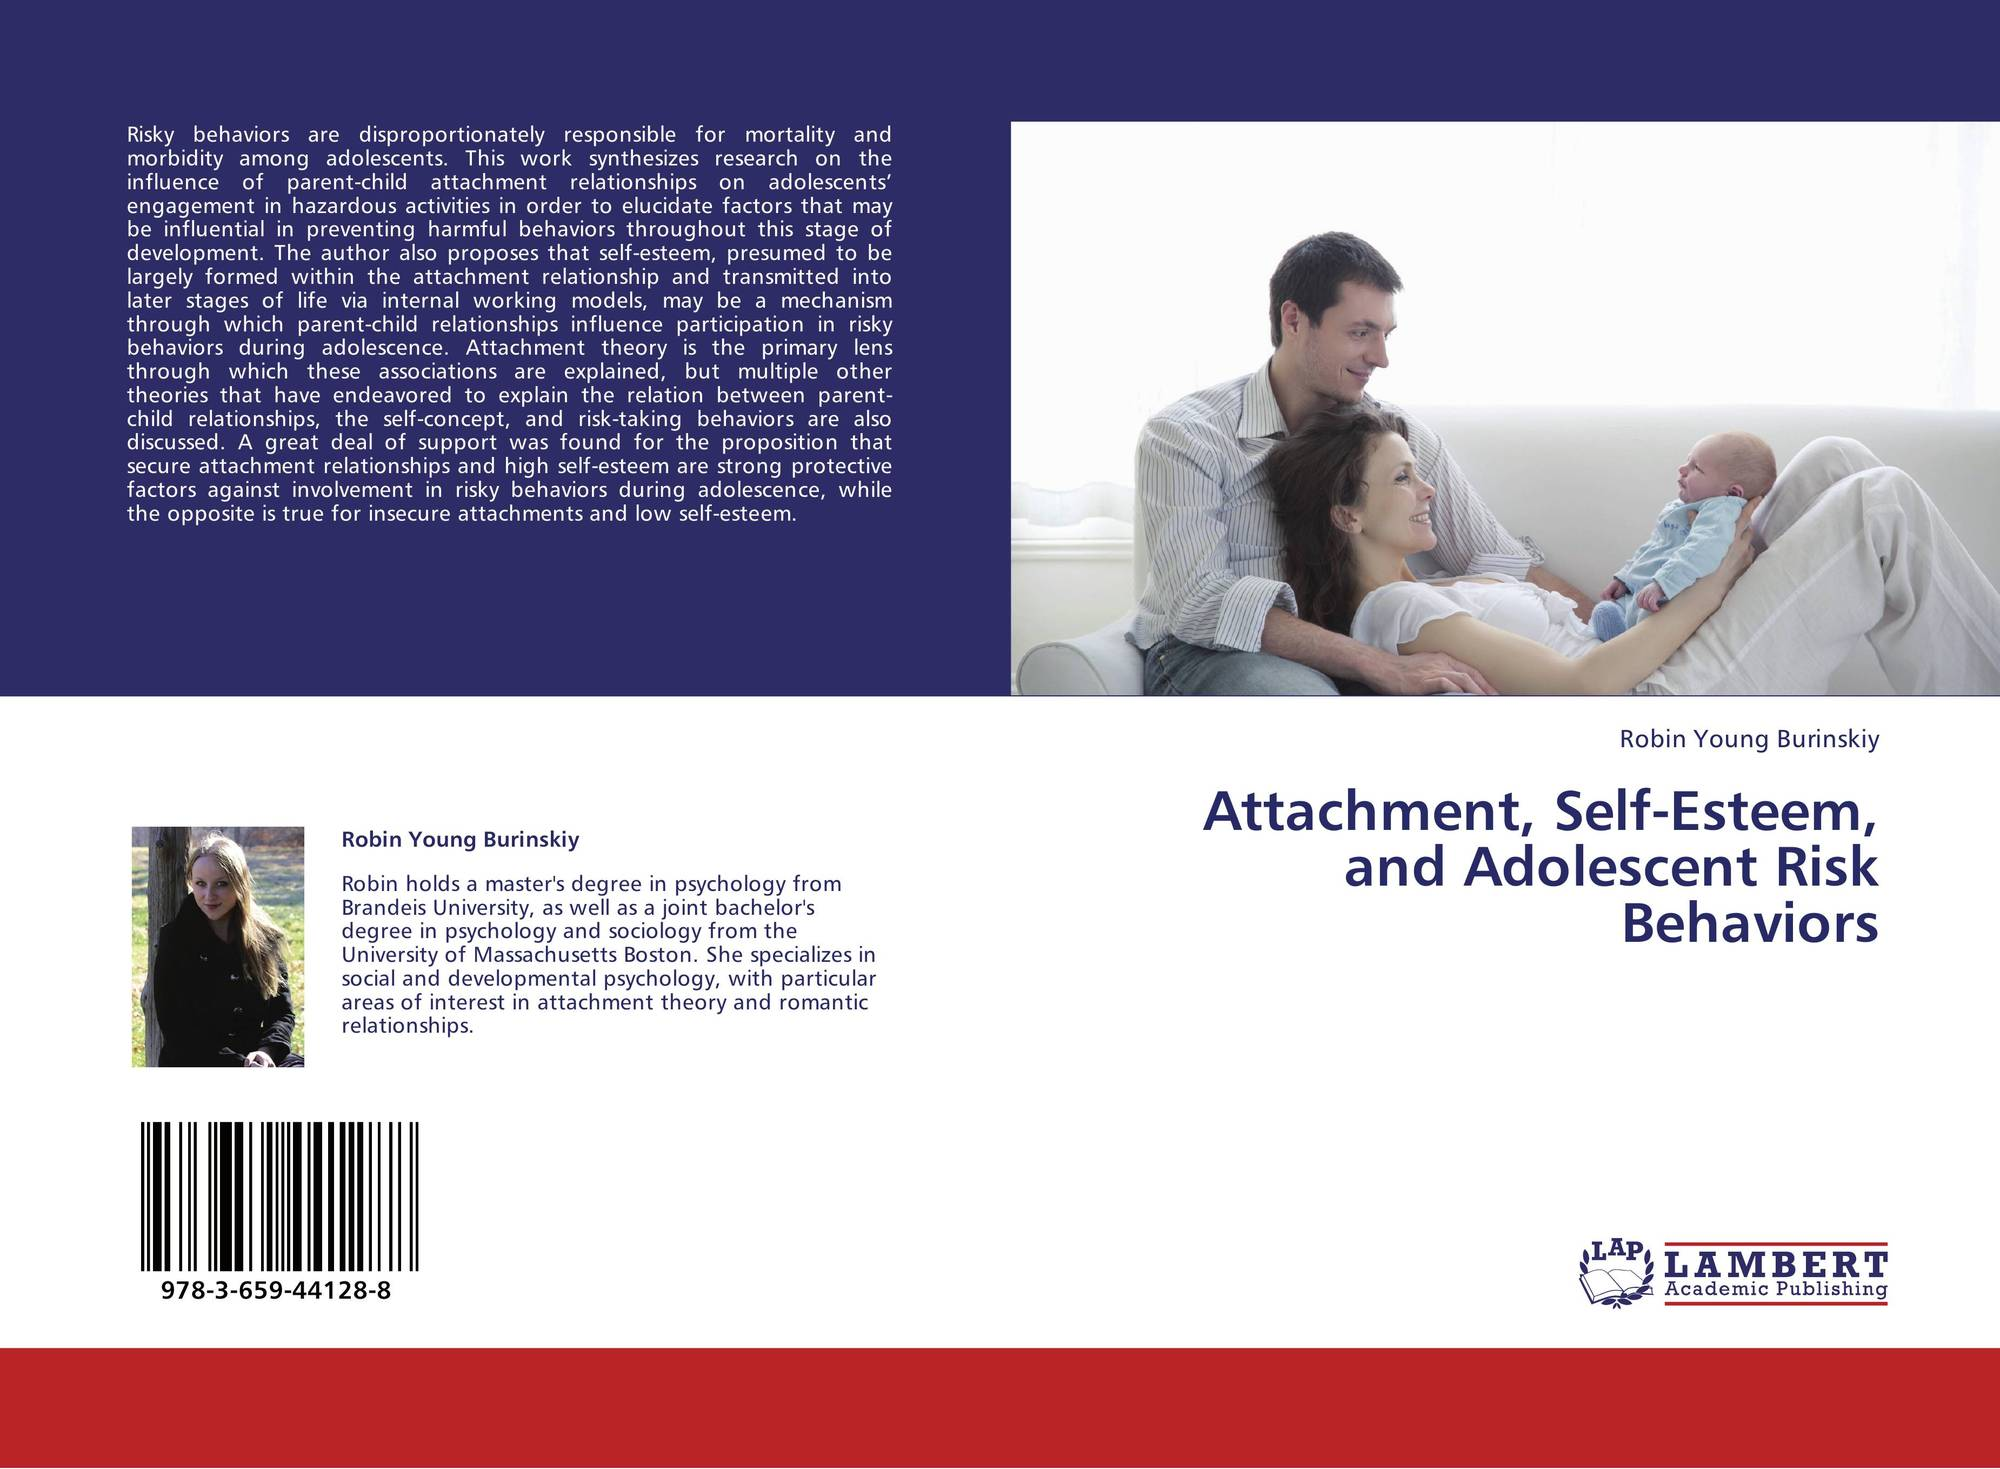 adolescence and low self esteem Causes and consequences of low self-esteem in children and adolescents the relationship between appearance and self-worth in adolescent males and females.